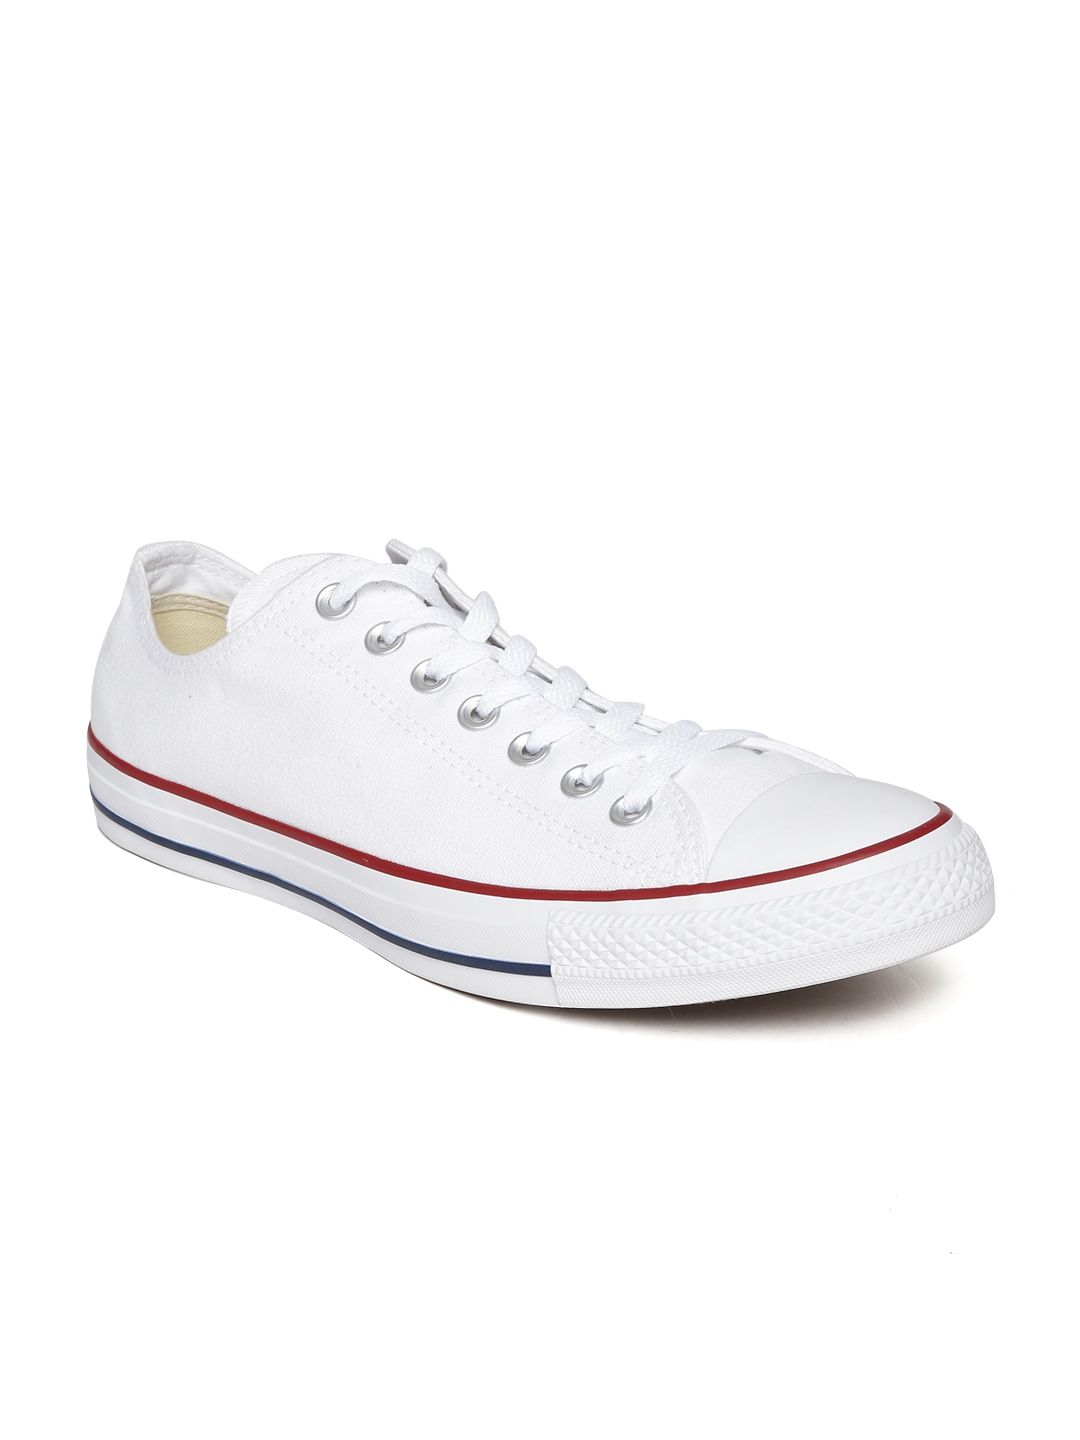 compare converse unisex white canvas shoes price